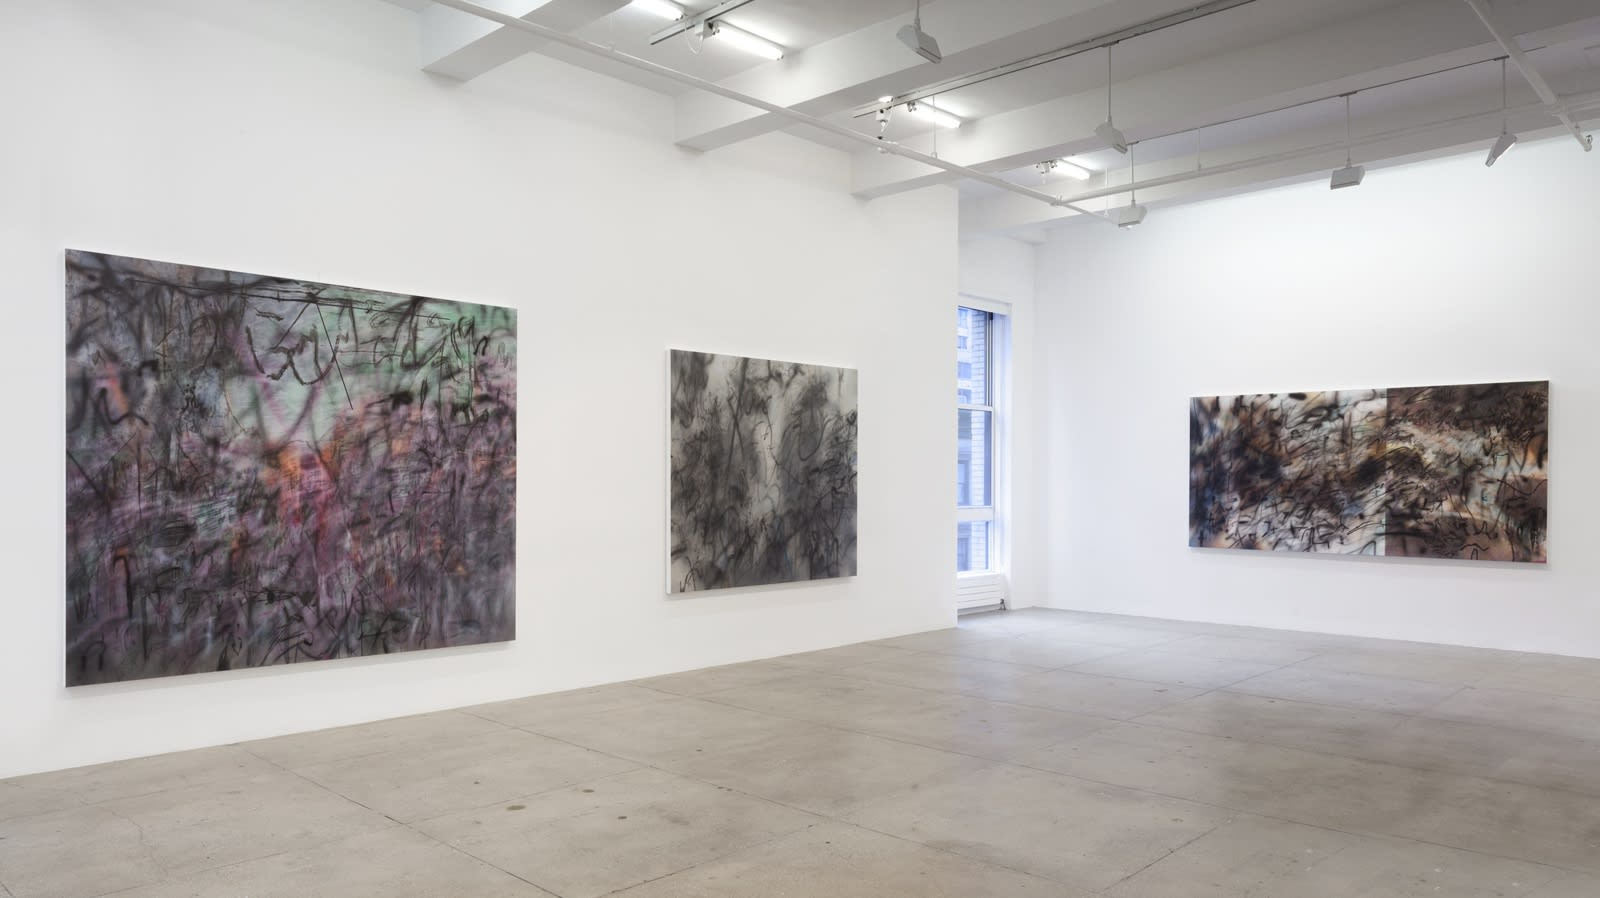 3 abstract paintings hang in a white gallery space with a window.